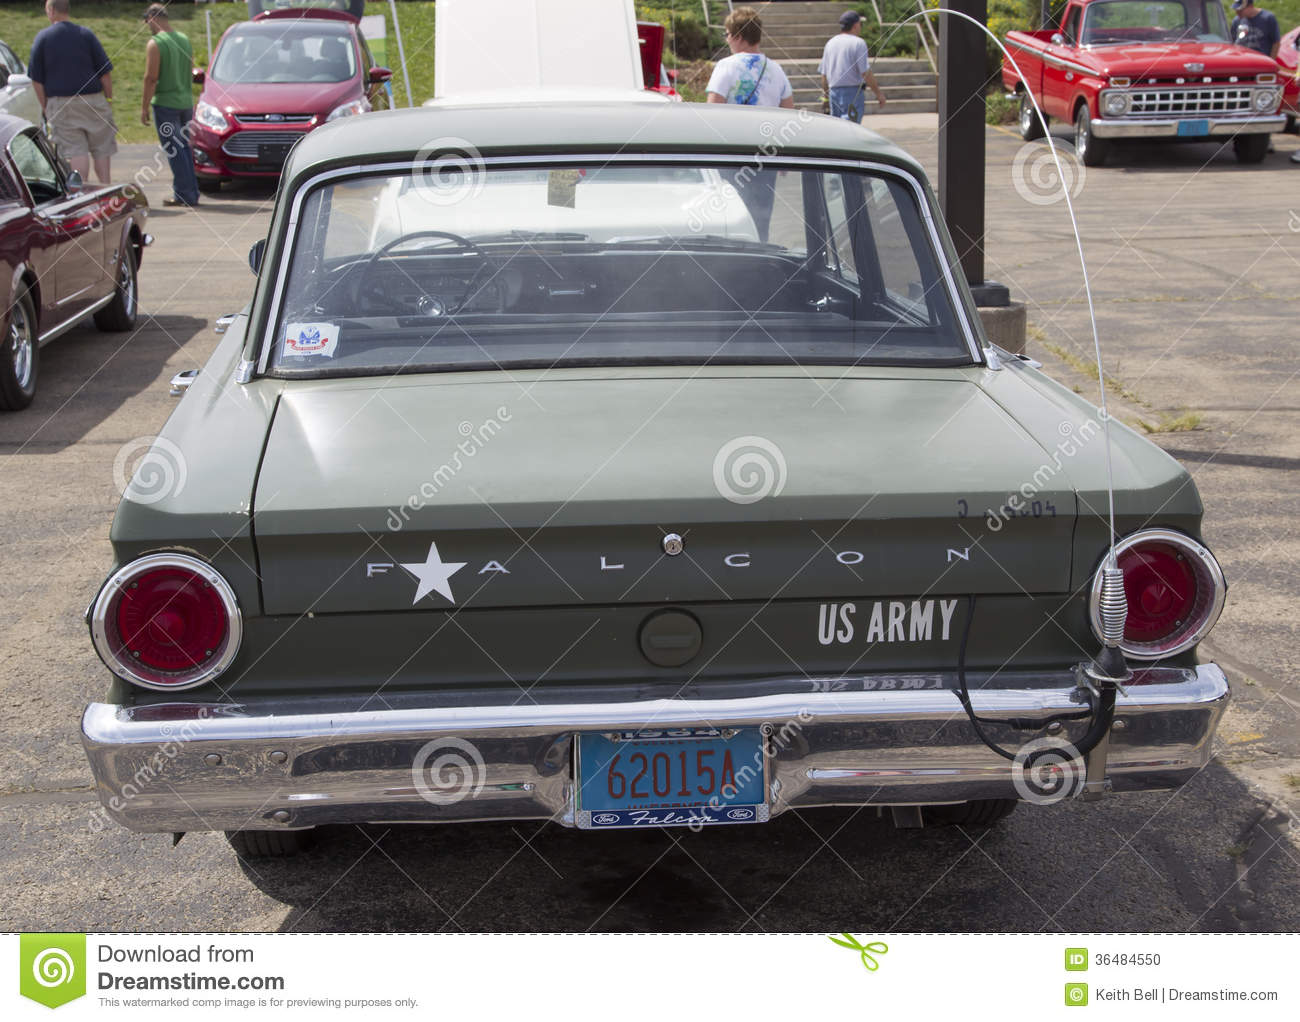 1964 Ford Falcon Us Army Car Rear View Editorial Image